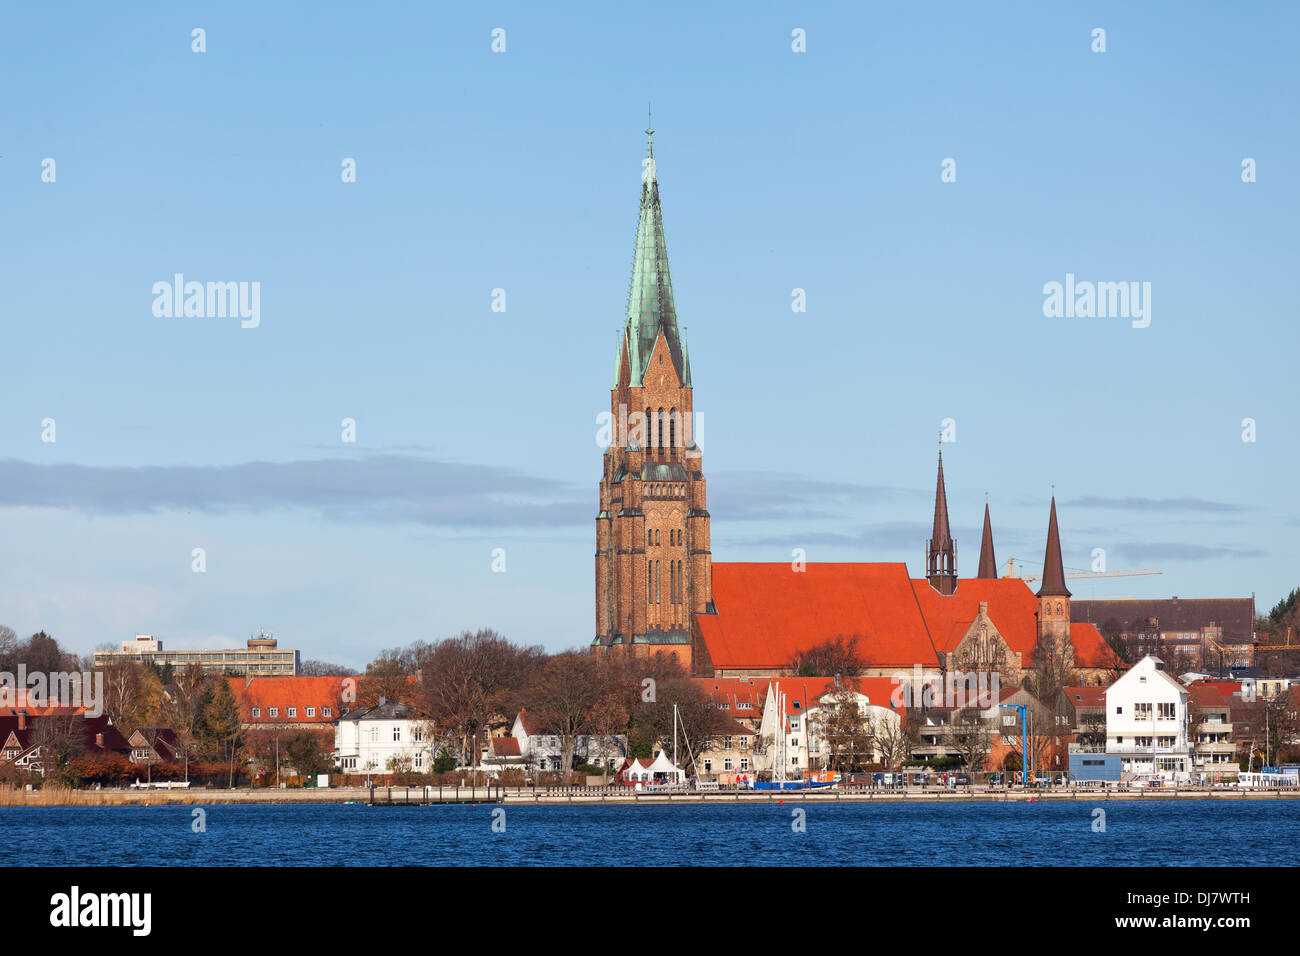 Cathedral St. Petri in Schleswig, Germany - Stock Image